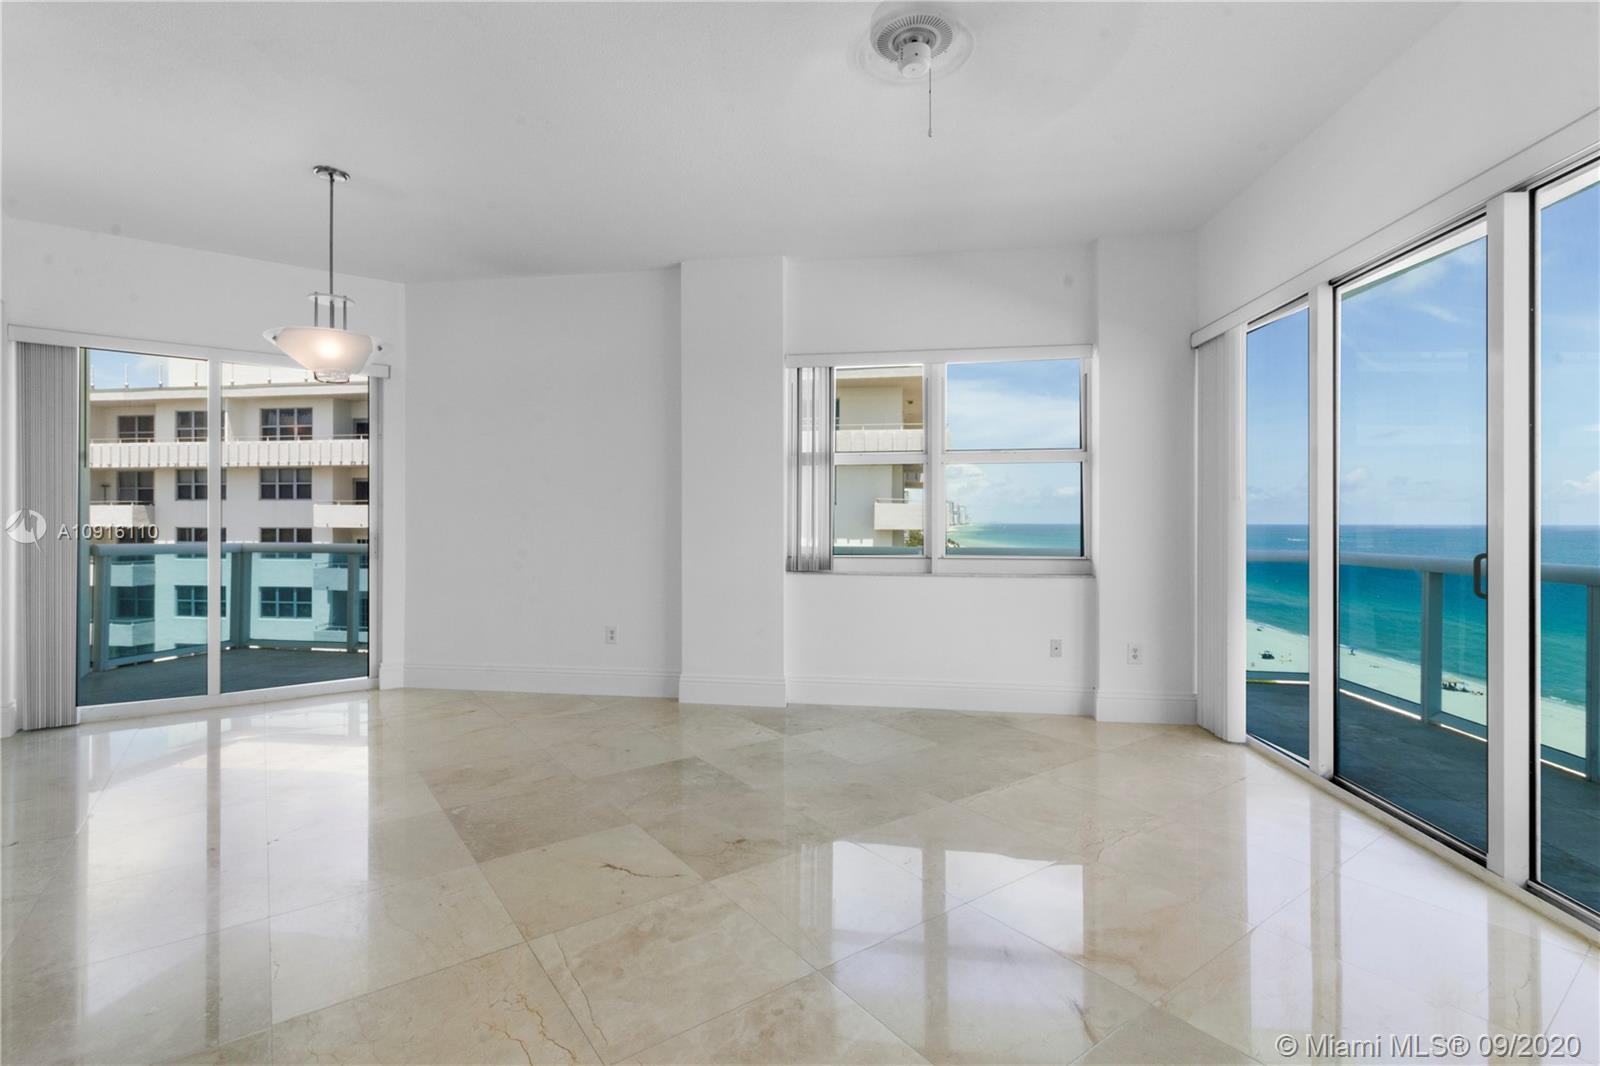 Extraordinary Penthouse oceanfront corner 3 bedrooms 2 bathroom condo. This apartment offers a large